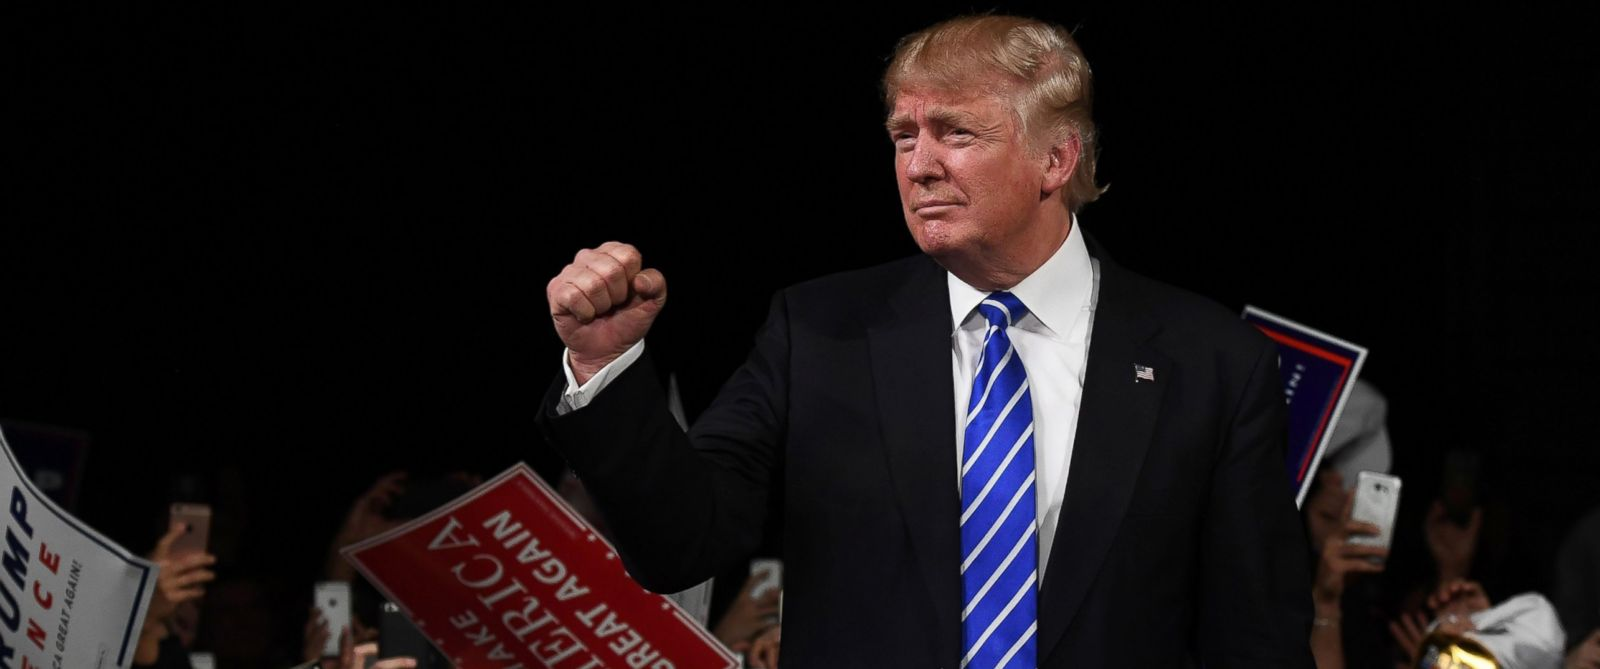 PHOTO: Republican presidential nominee Donald Trump greets supporters during a campaign rally at the Suburban Collection Showplace in Novi, Michigan, Sept. 30, 2016.